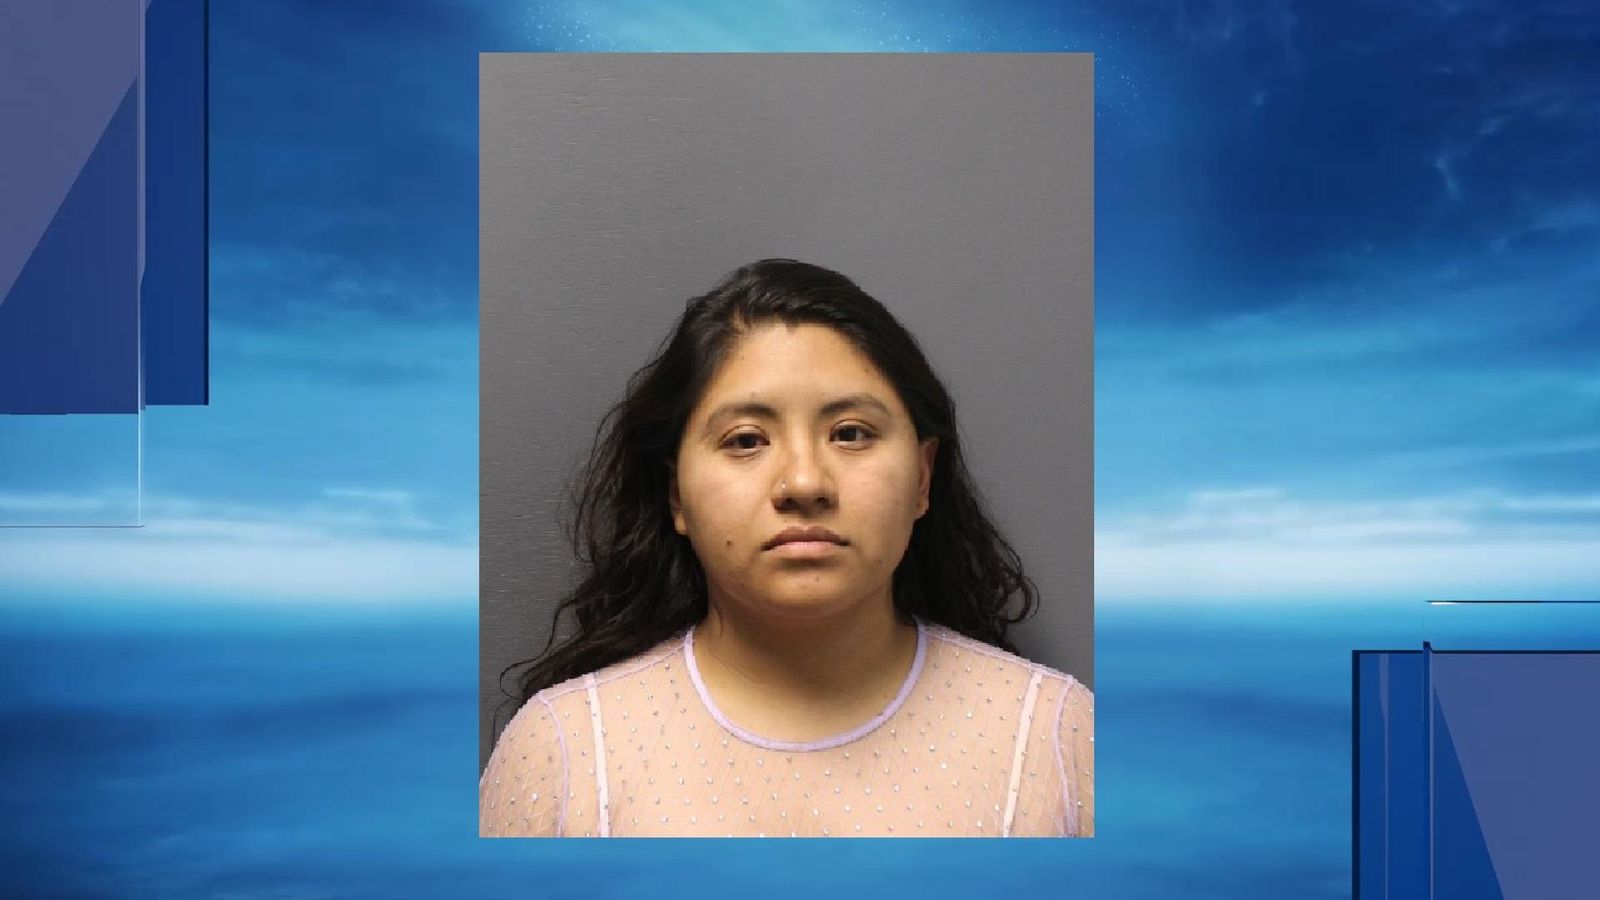 Karina Dominguez Martinez, 25, of Worcester, Mass. (Pawtucket police photo)